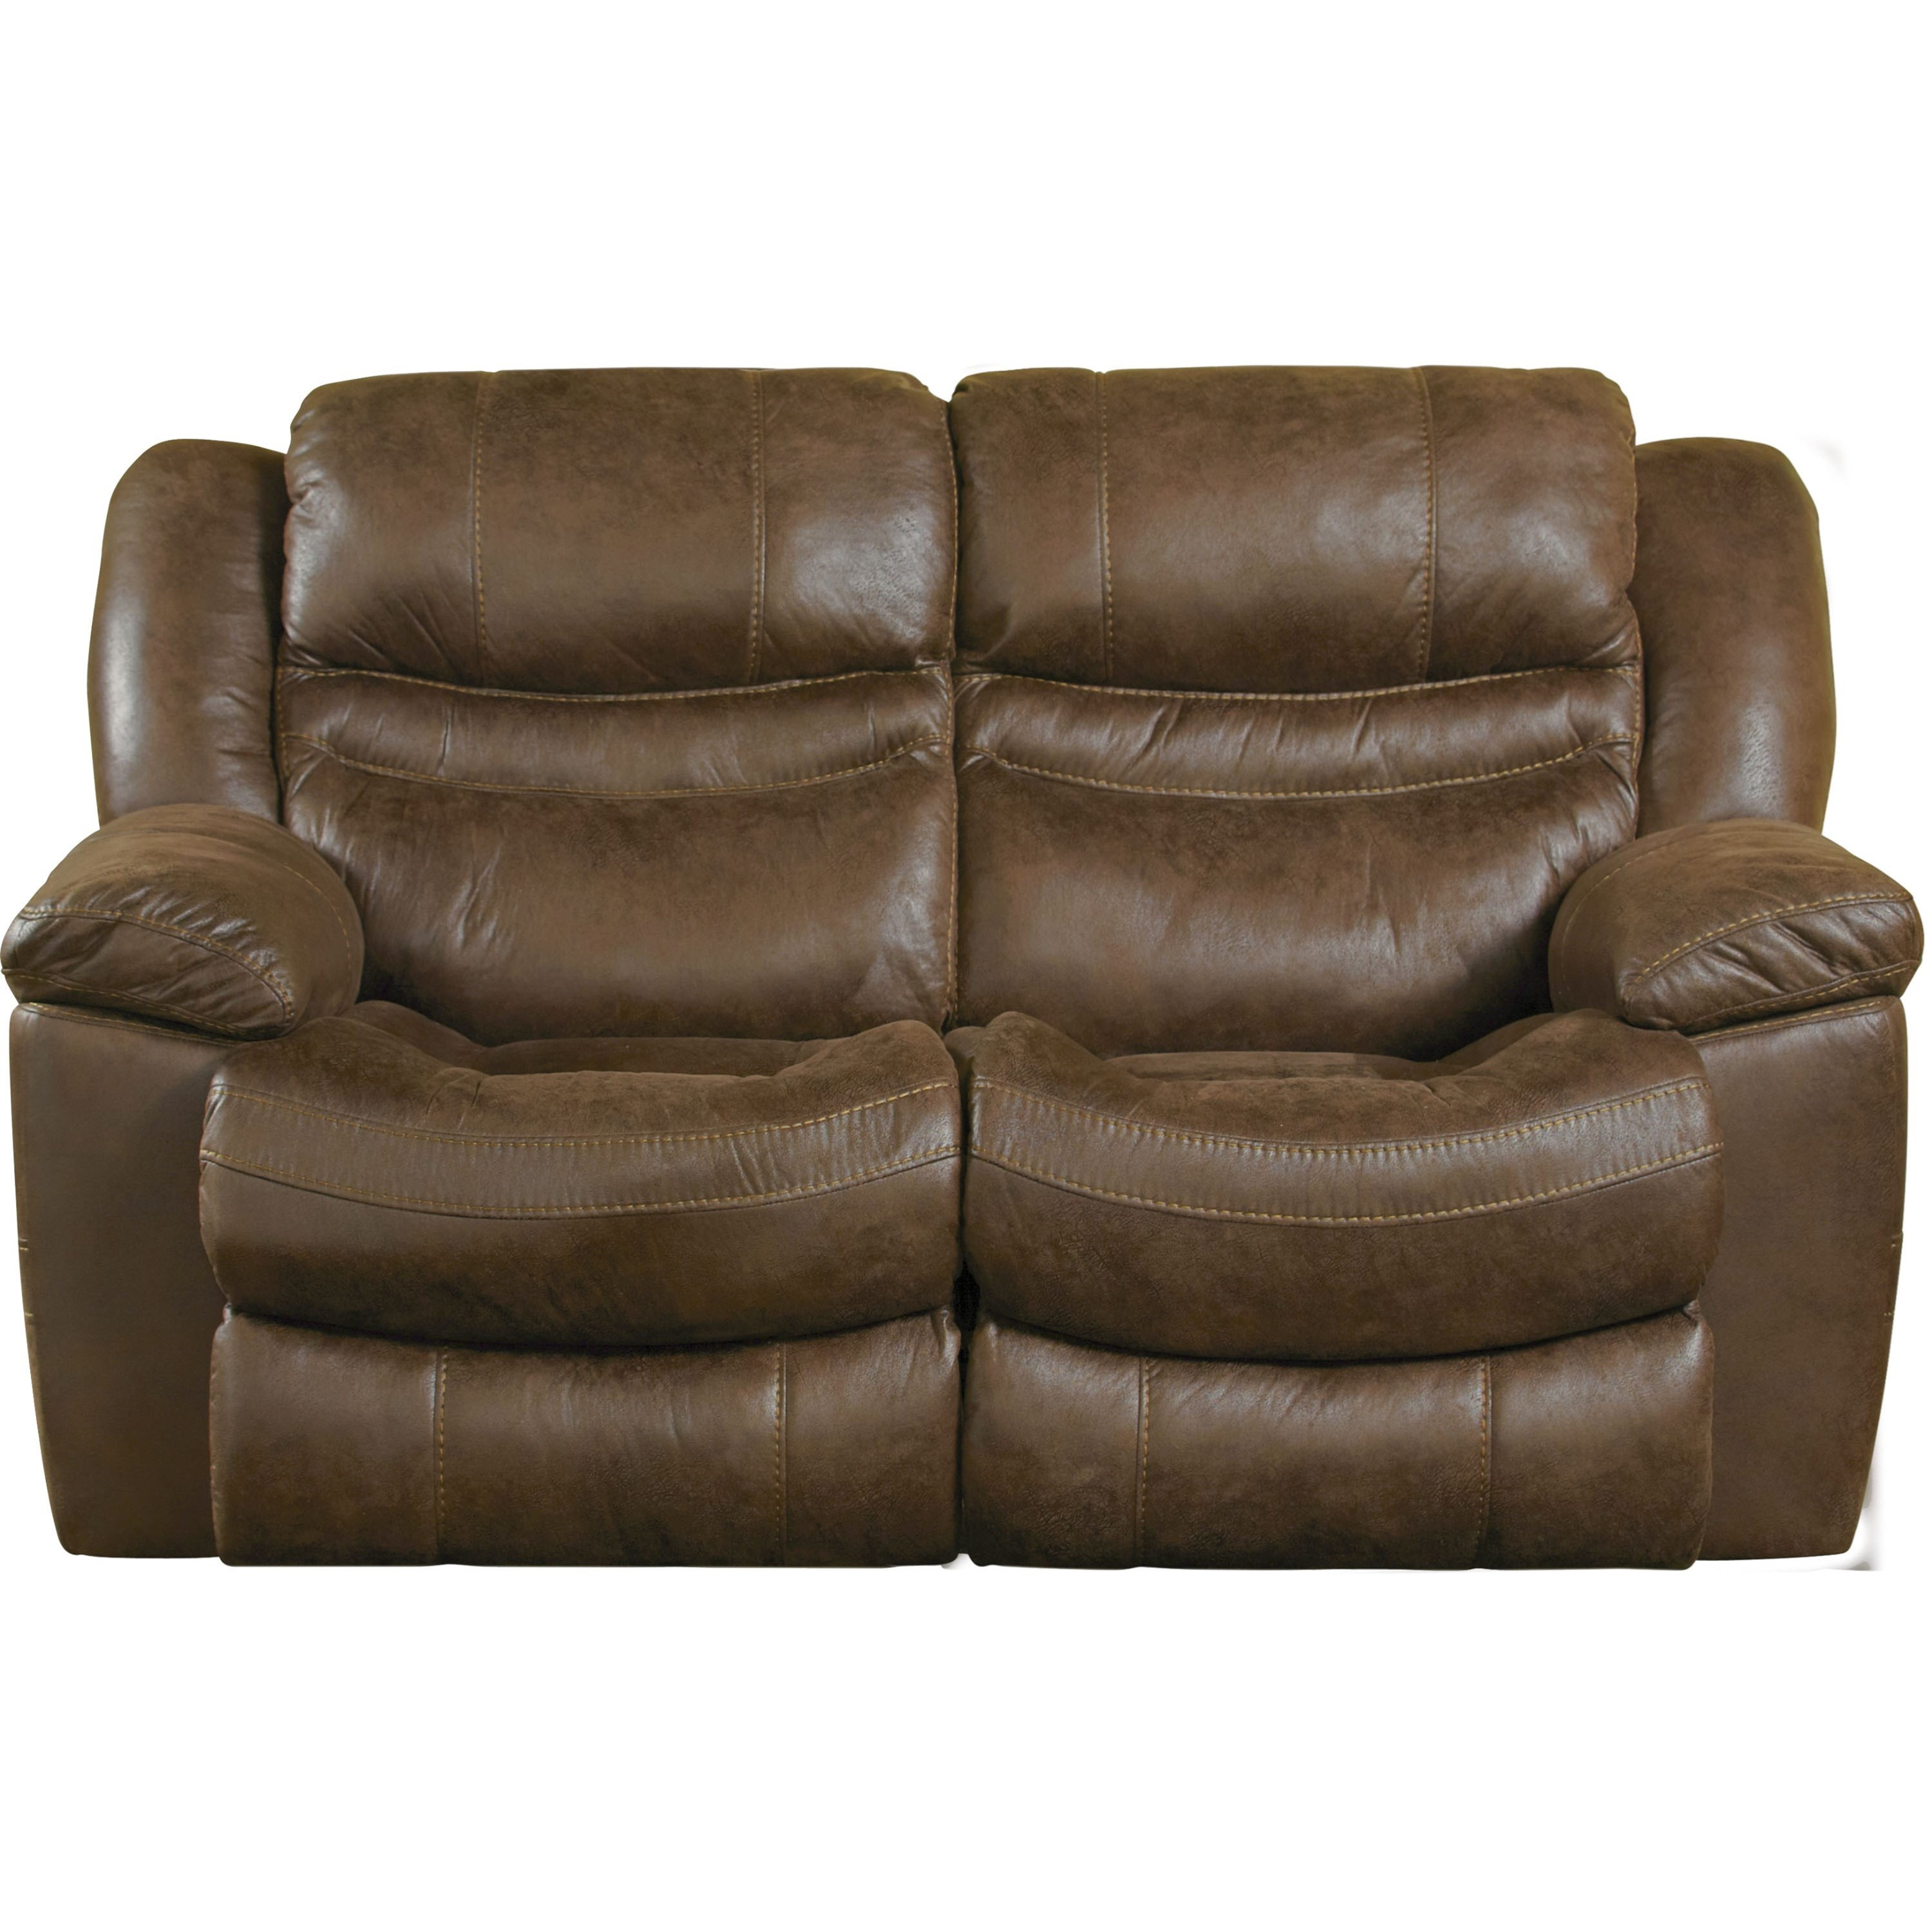 Catnapper Valiant 1402 2 Rocking Reclining Loveseat Efo Furniture Outlet Reclining Love Seats